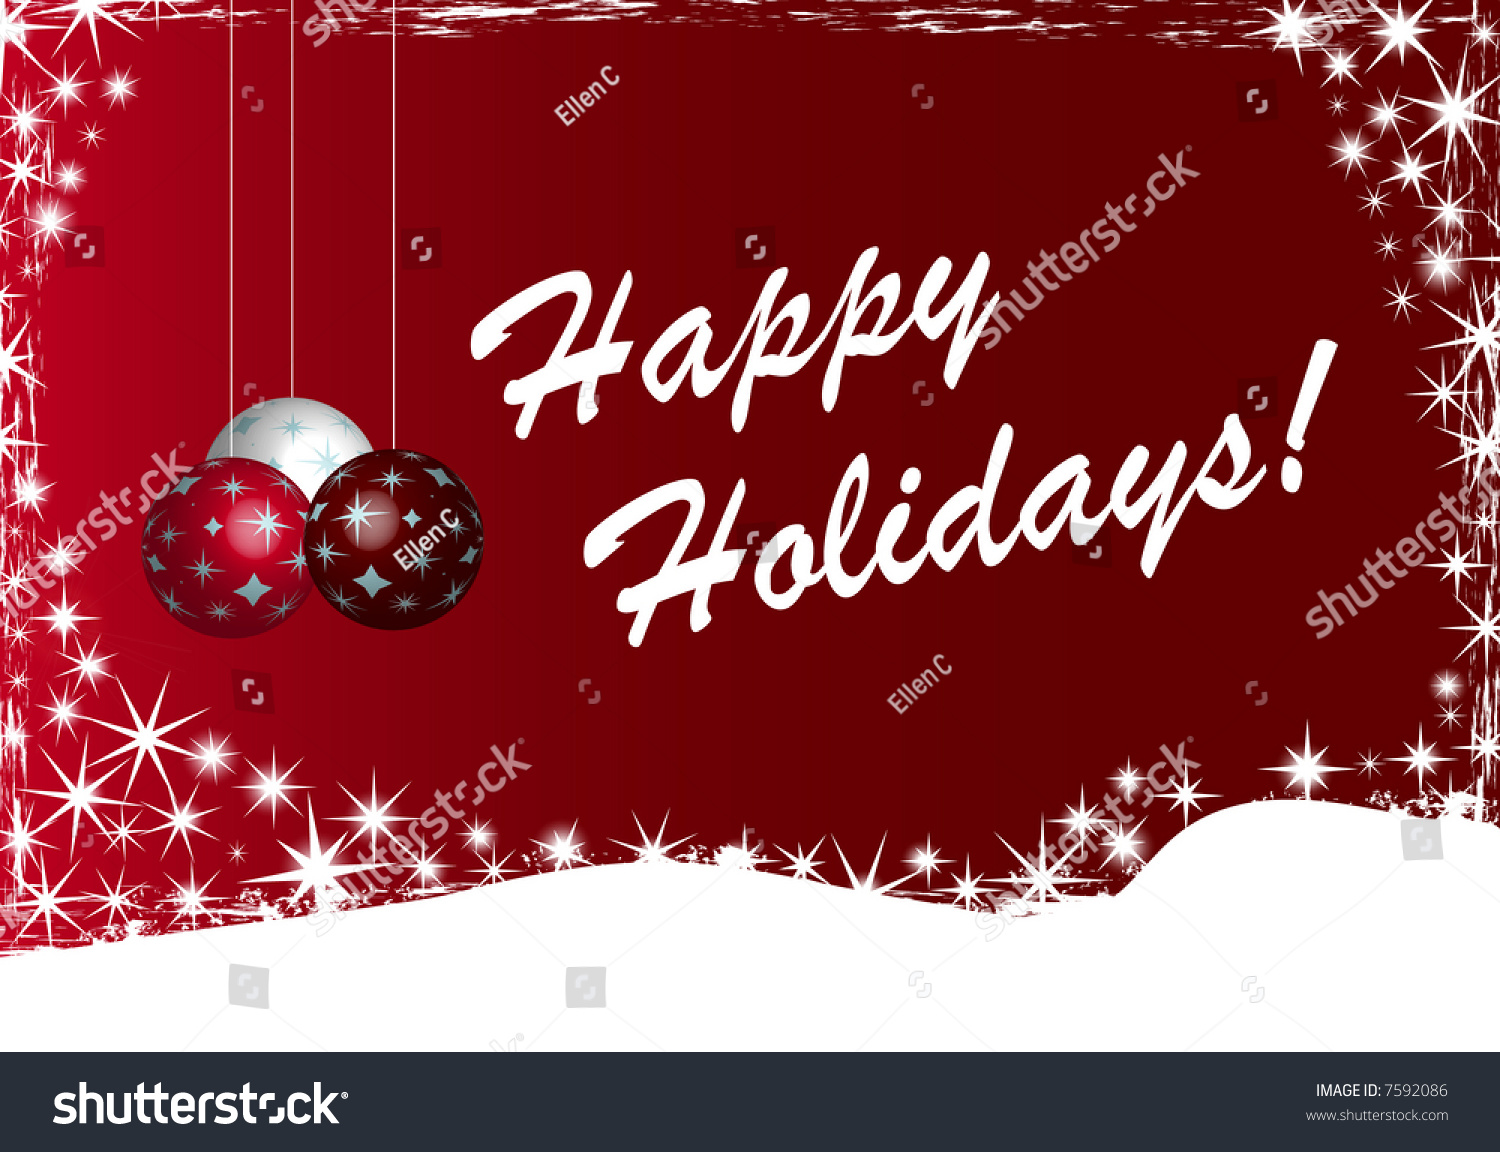 Happy Holidays Greeting Design Stock Illustration 7592086 - Shutterstock